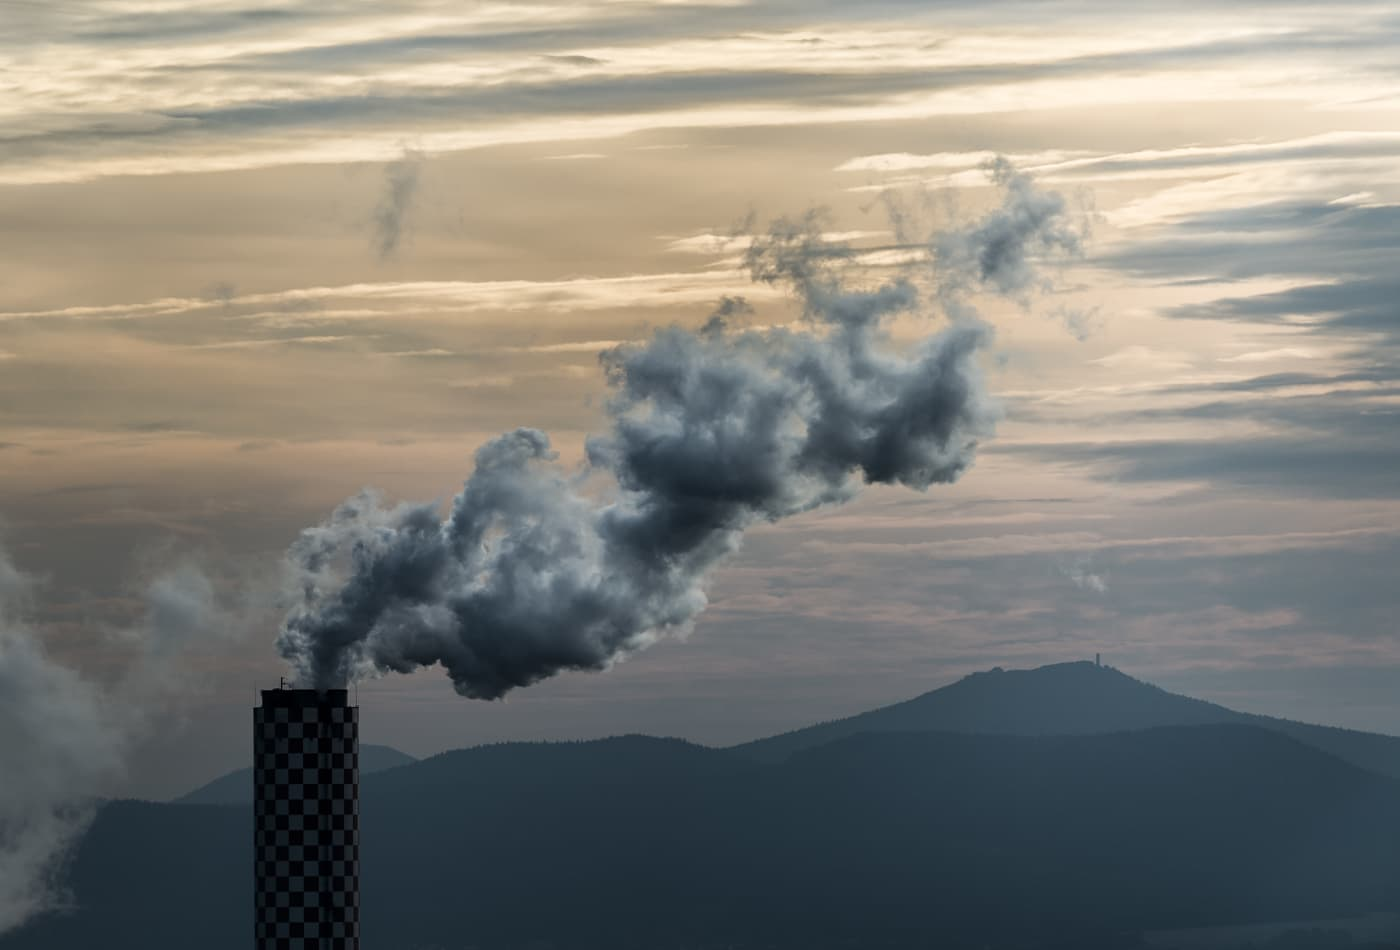 Energy-related CO2 emissions 'flatlined' last year, IEA says, raising hopes about climate